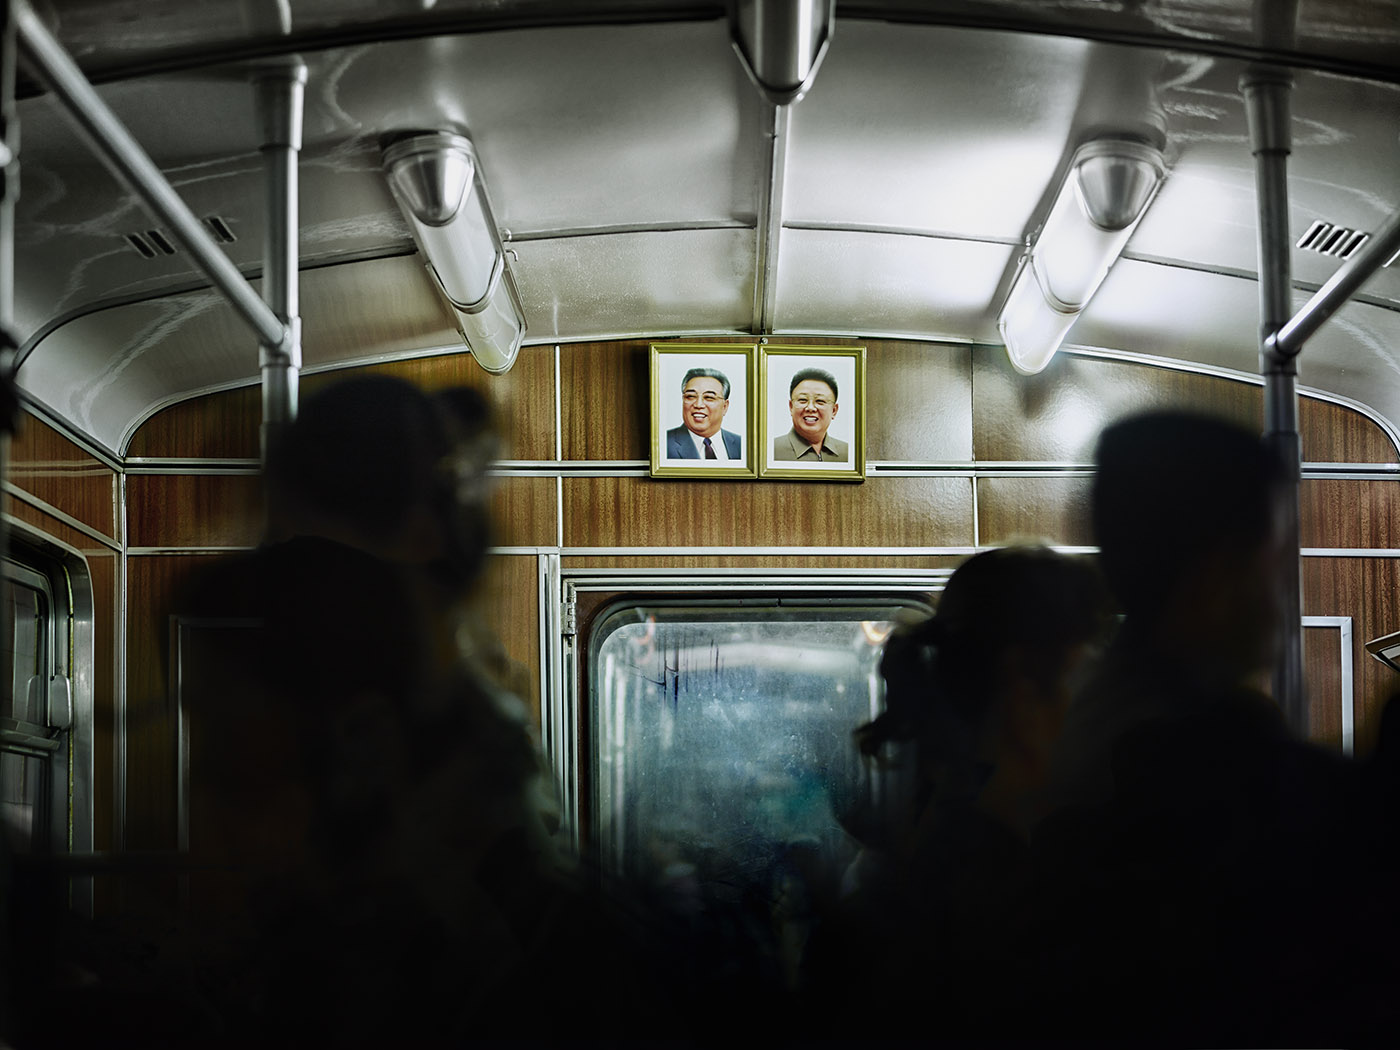 Portraits of the leaders in a Pyongyang Metro car.                                   The Pyongyang Metro opened in 1973 and  currently consists of two lines